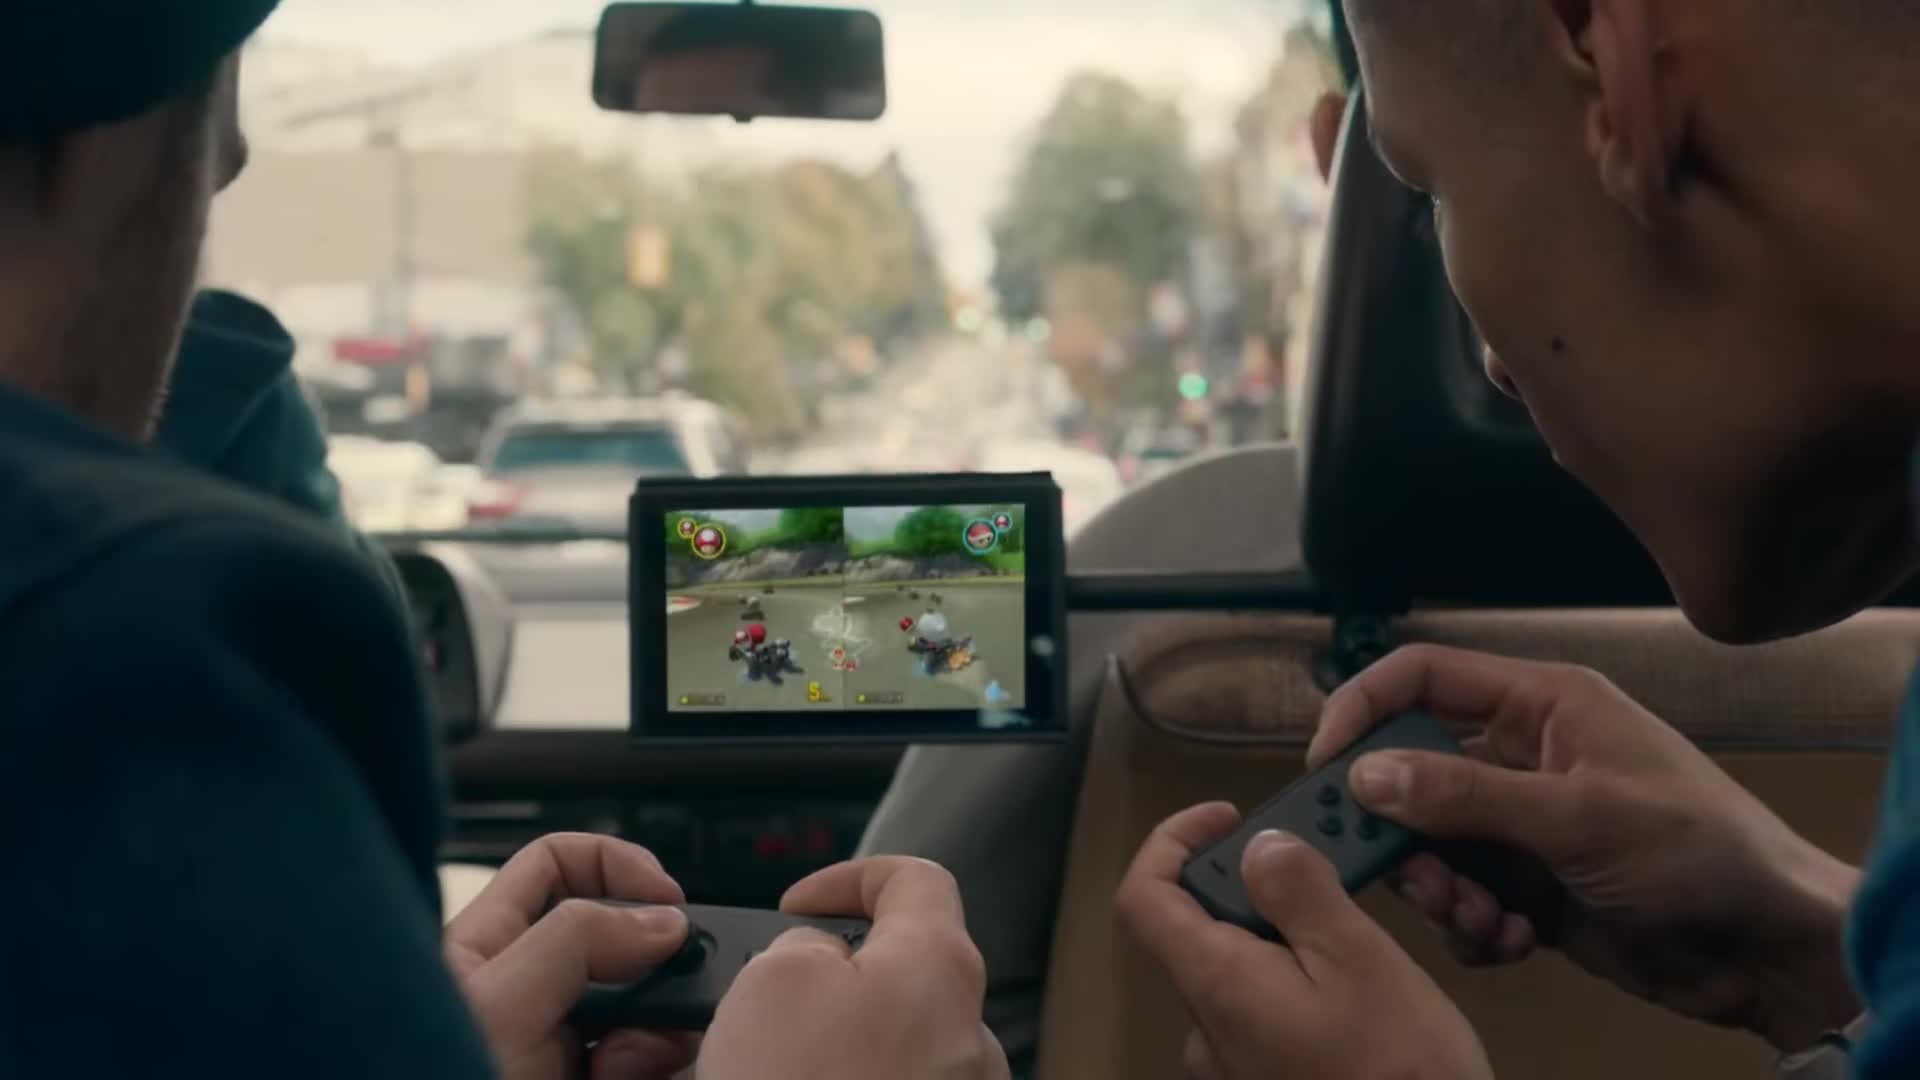 Mario kart eight in the Switch reveal trailer.